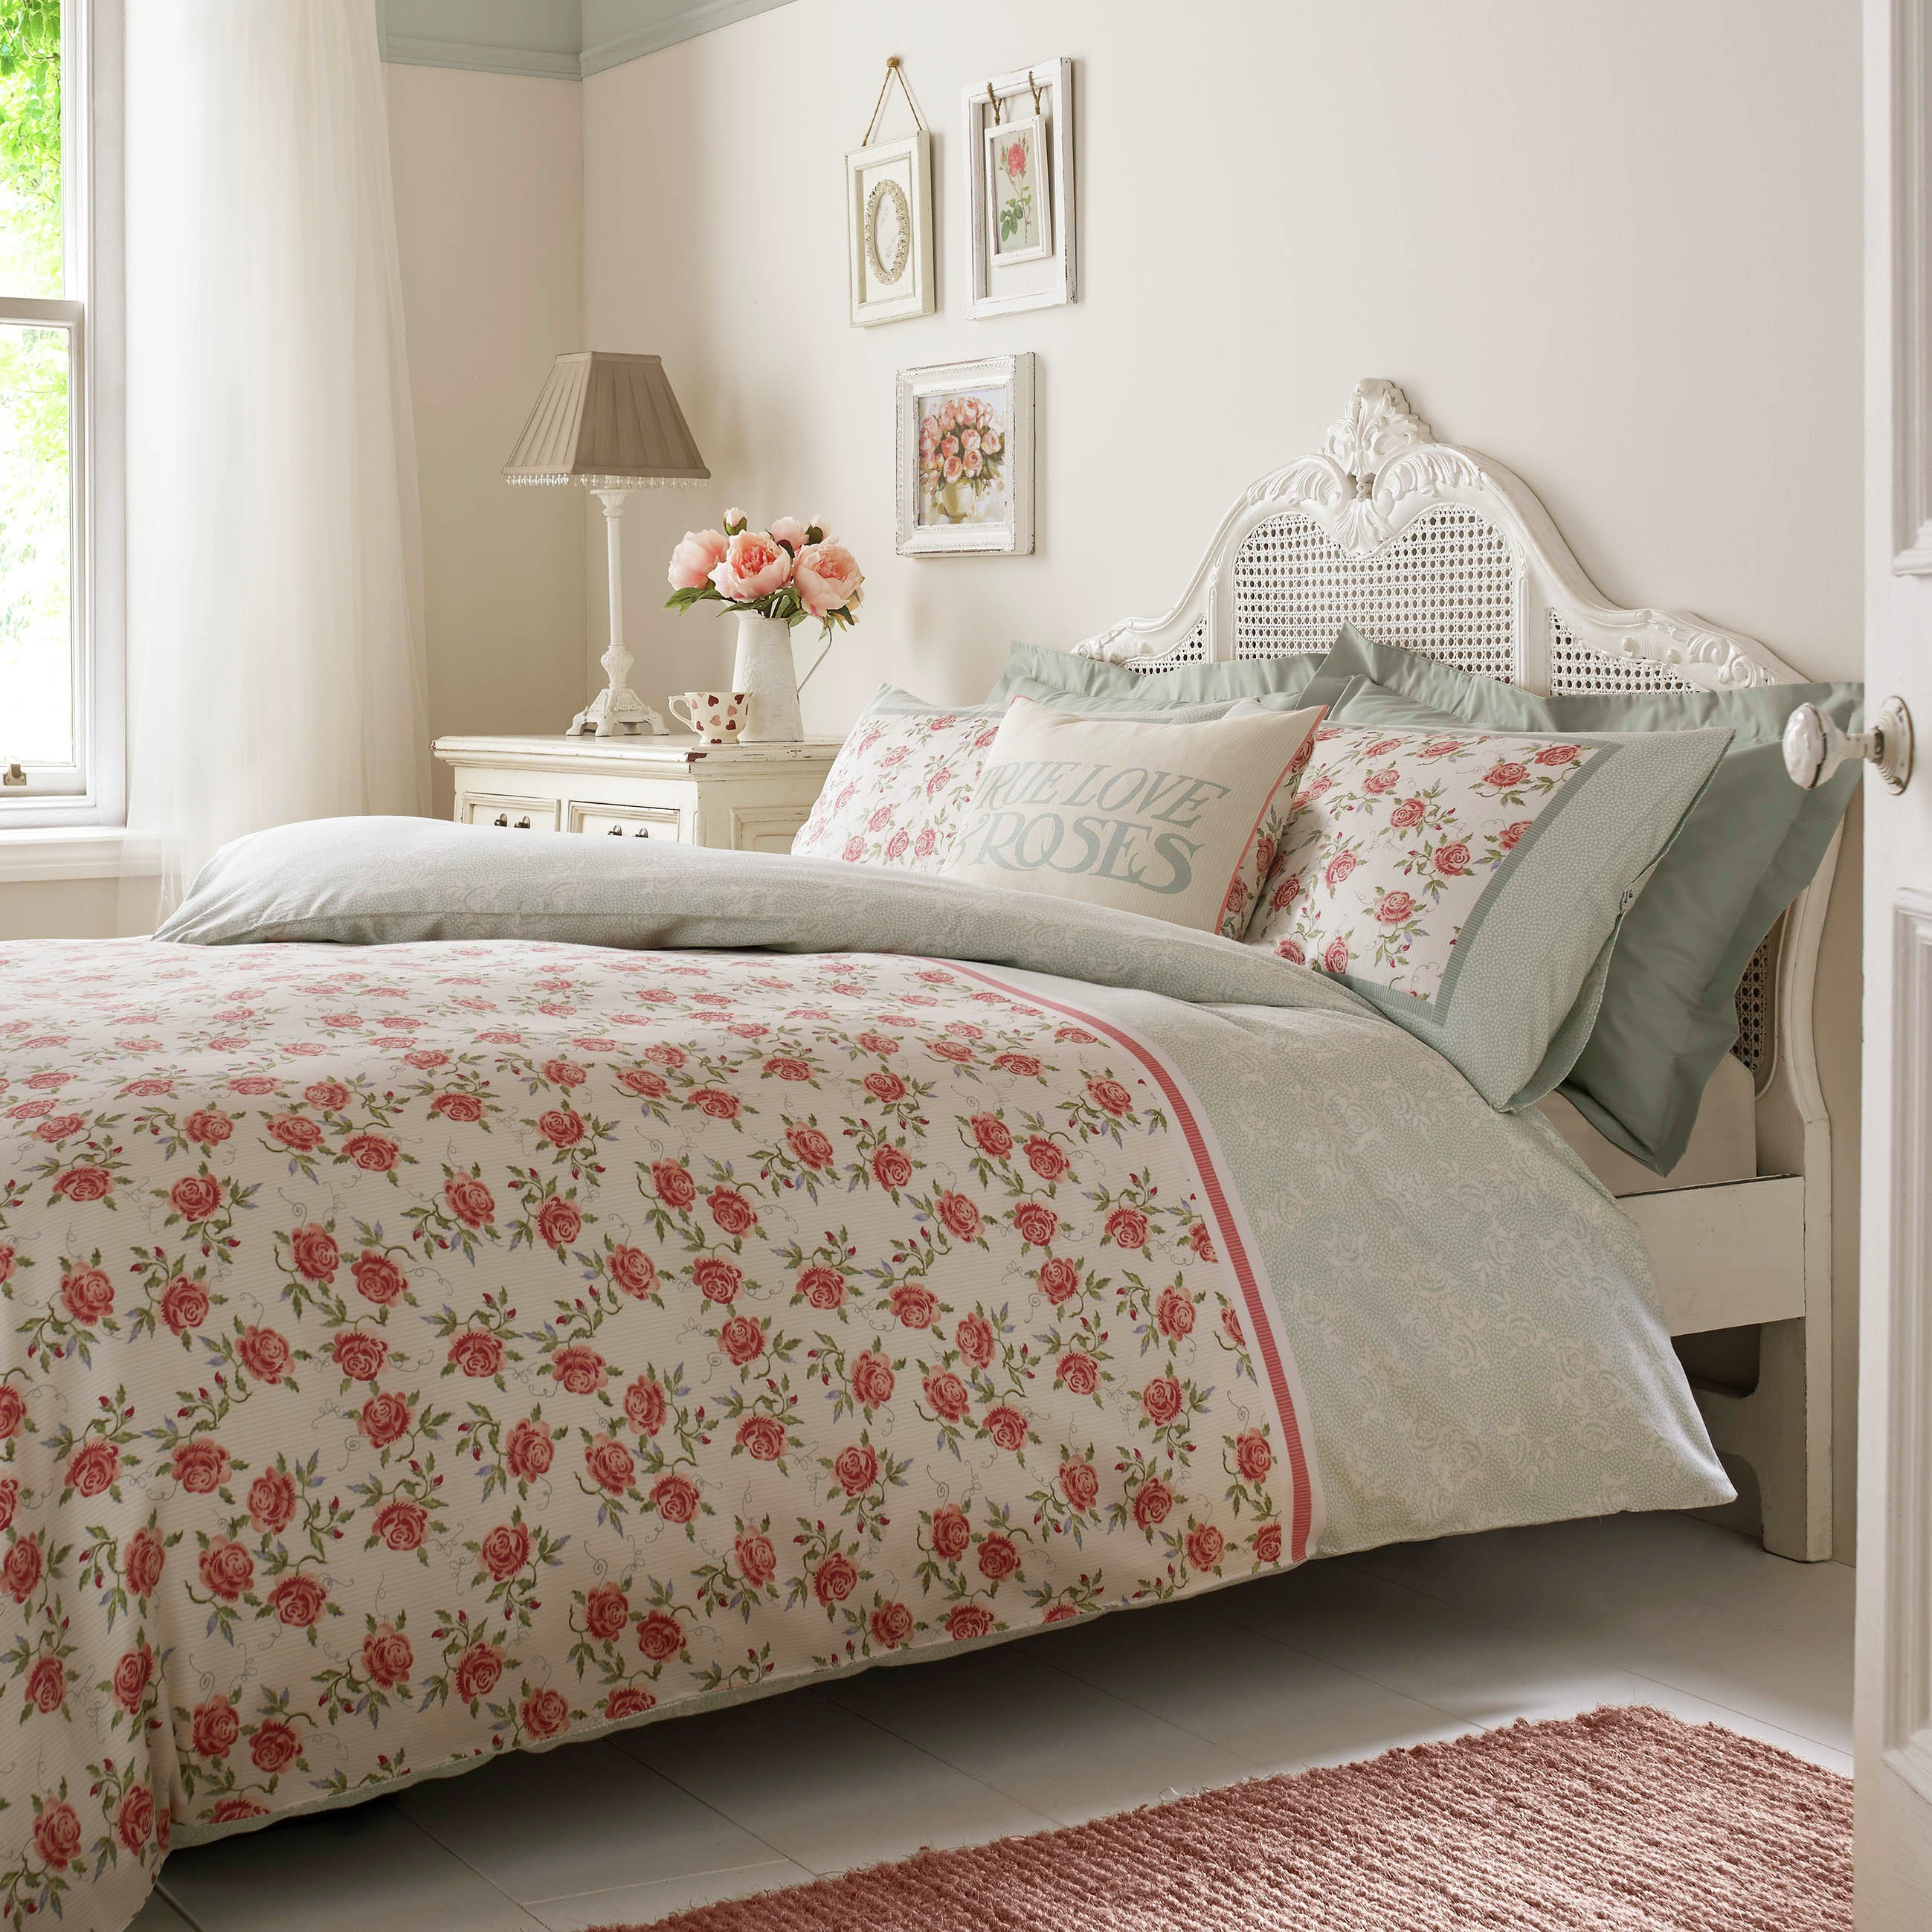 emma bridgewater striped rose bedding set  kingsize.